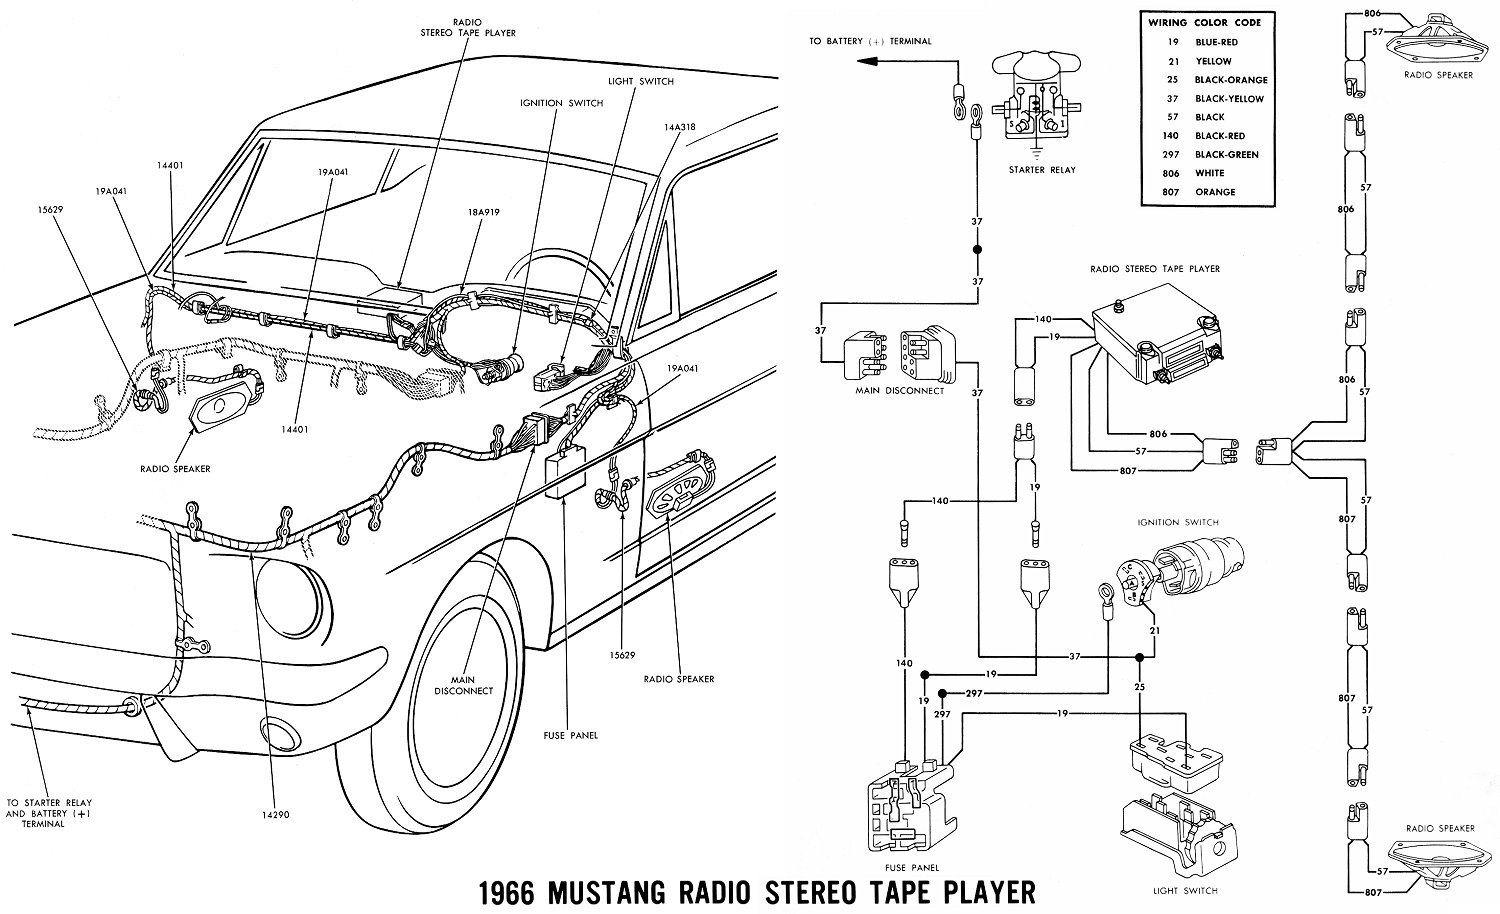 [ZHKZ_3066]  1966 Mustang Wiring Diagrams - Average Joe Restoration | 1966 Mustang Color Wiring Diagram |  | Average Joe Restoration